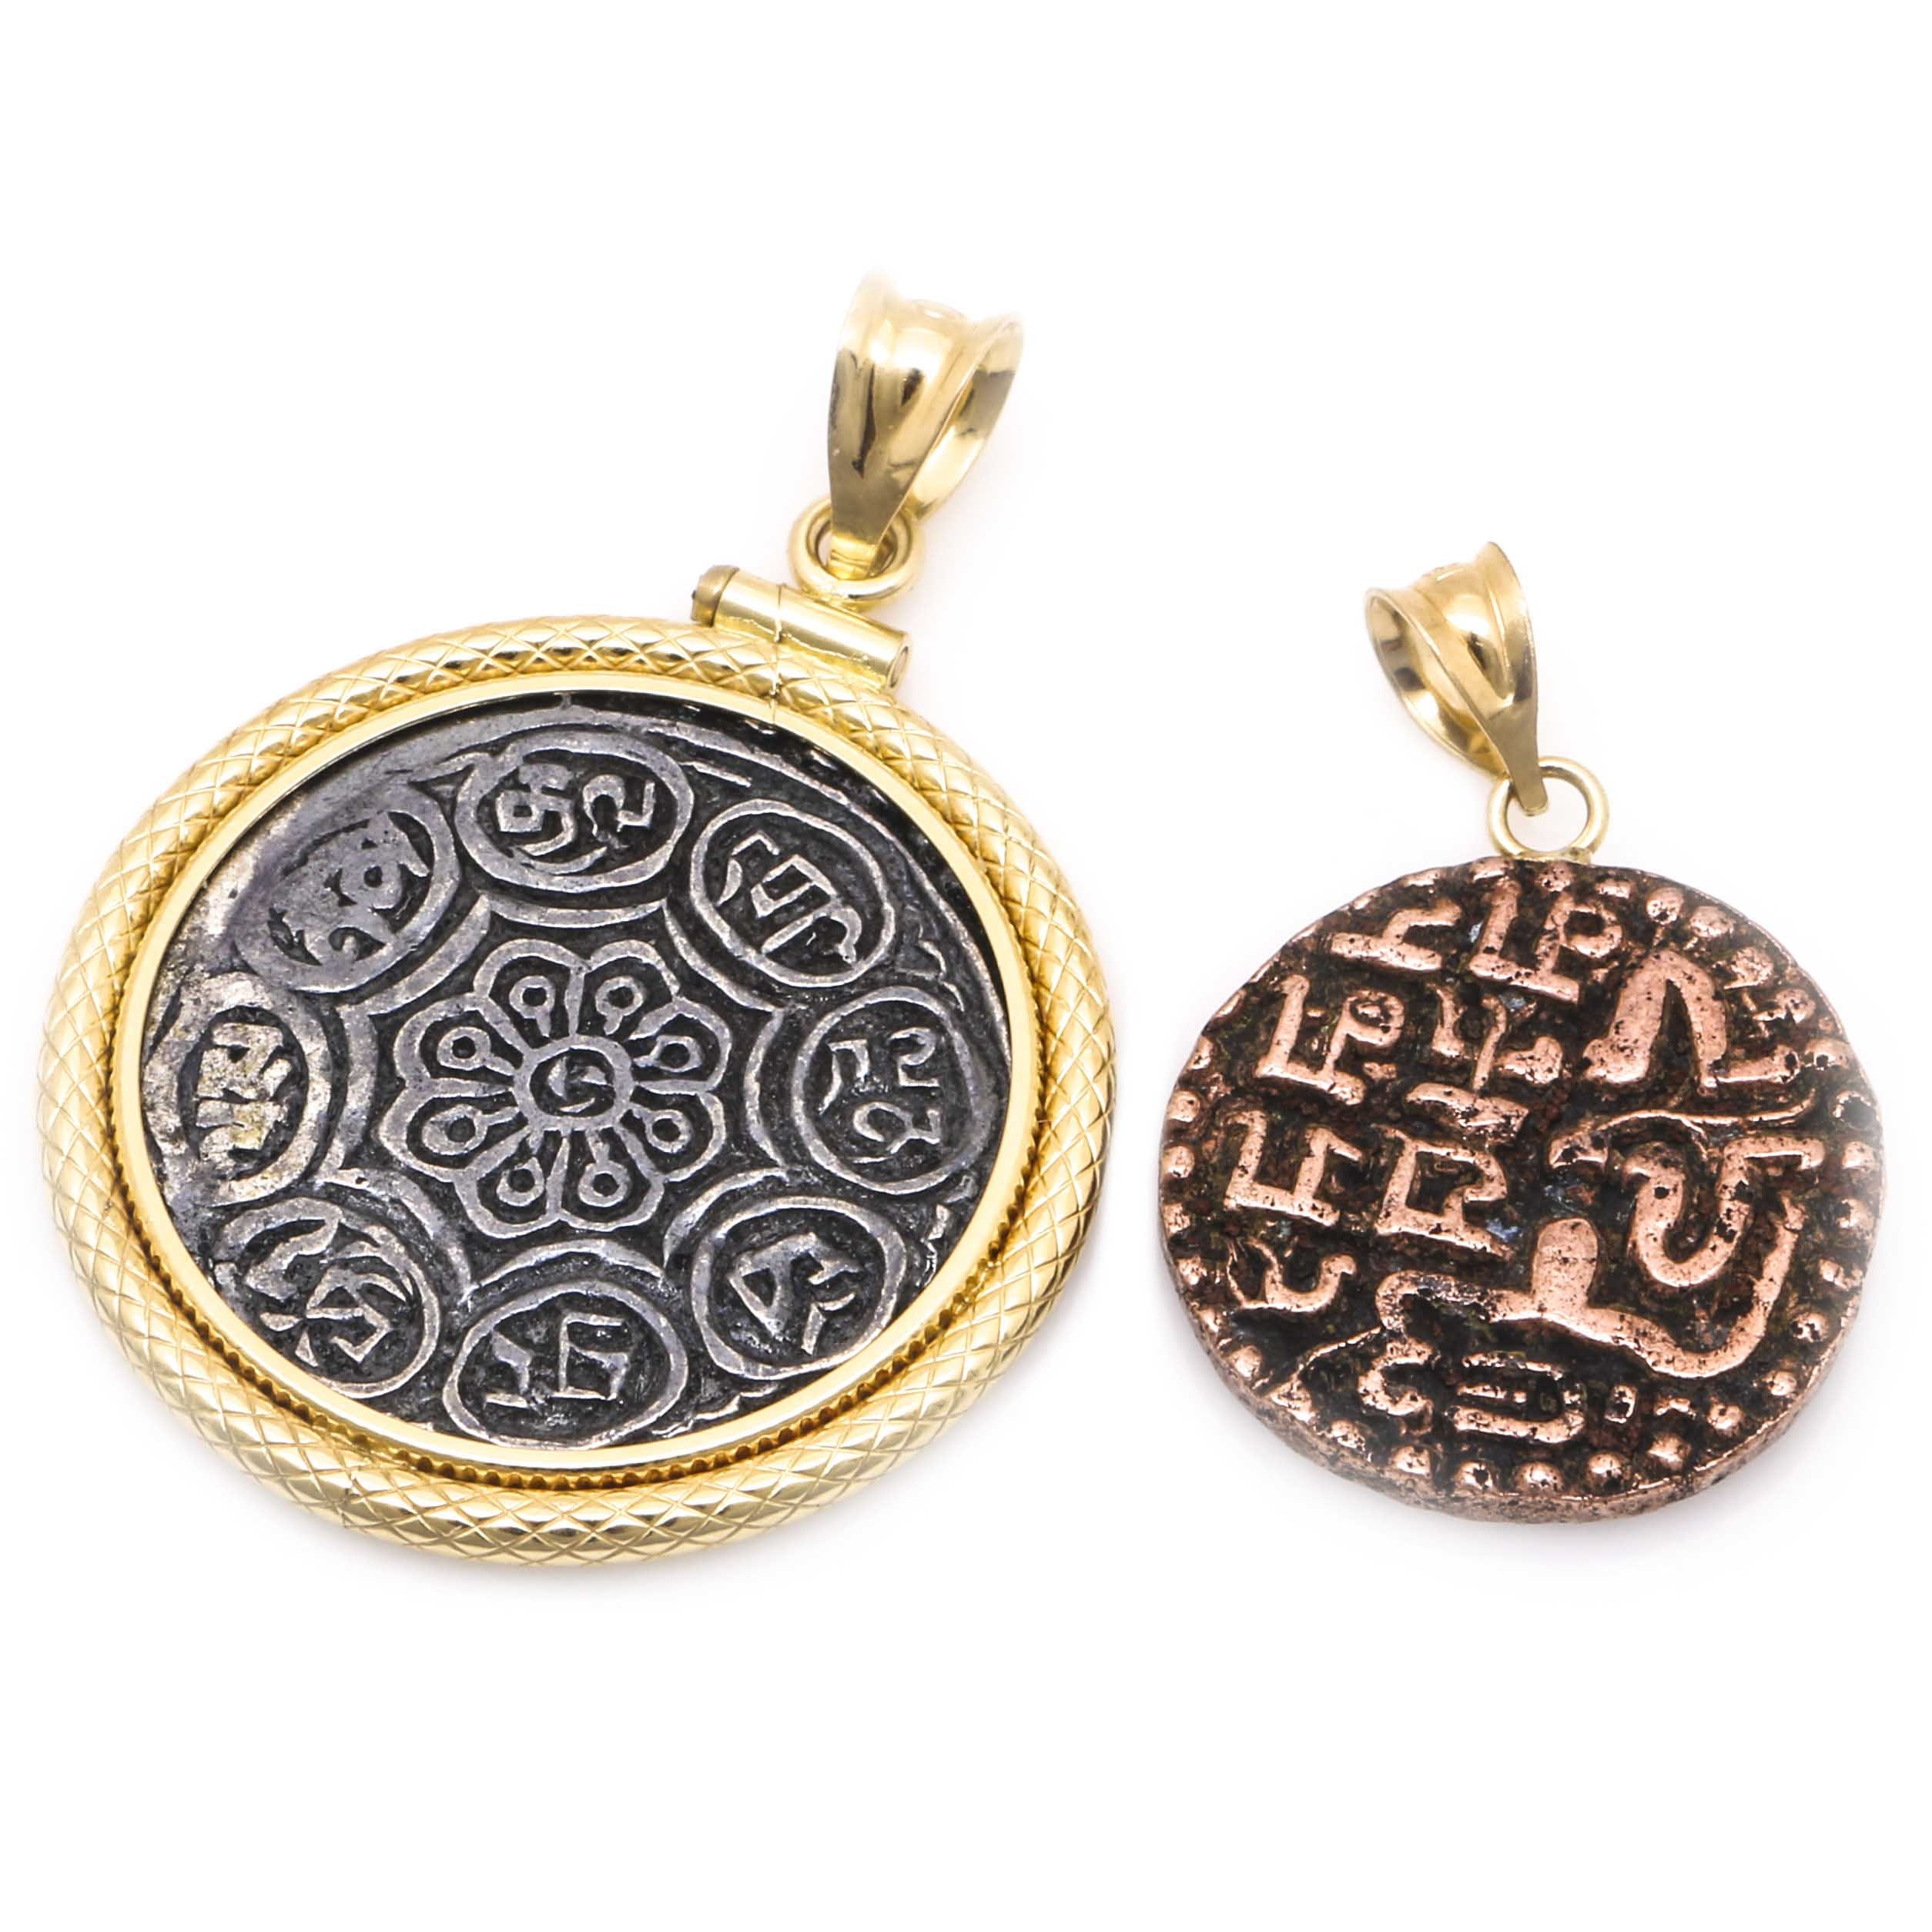 Sovereign Coin Pendants With 18K Yellow Gold Findings